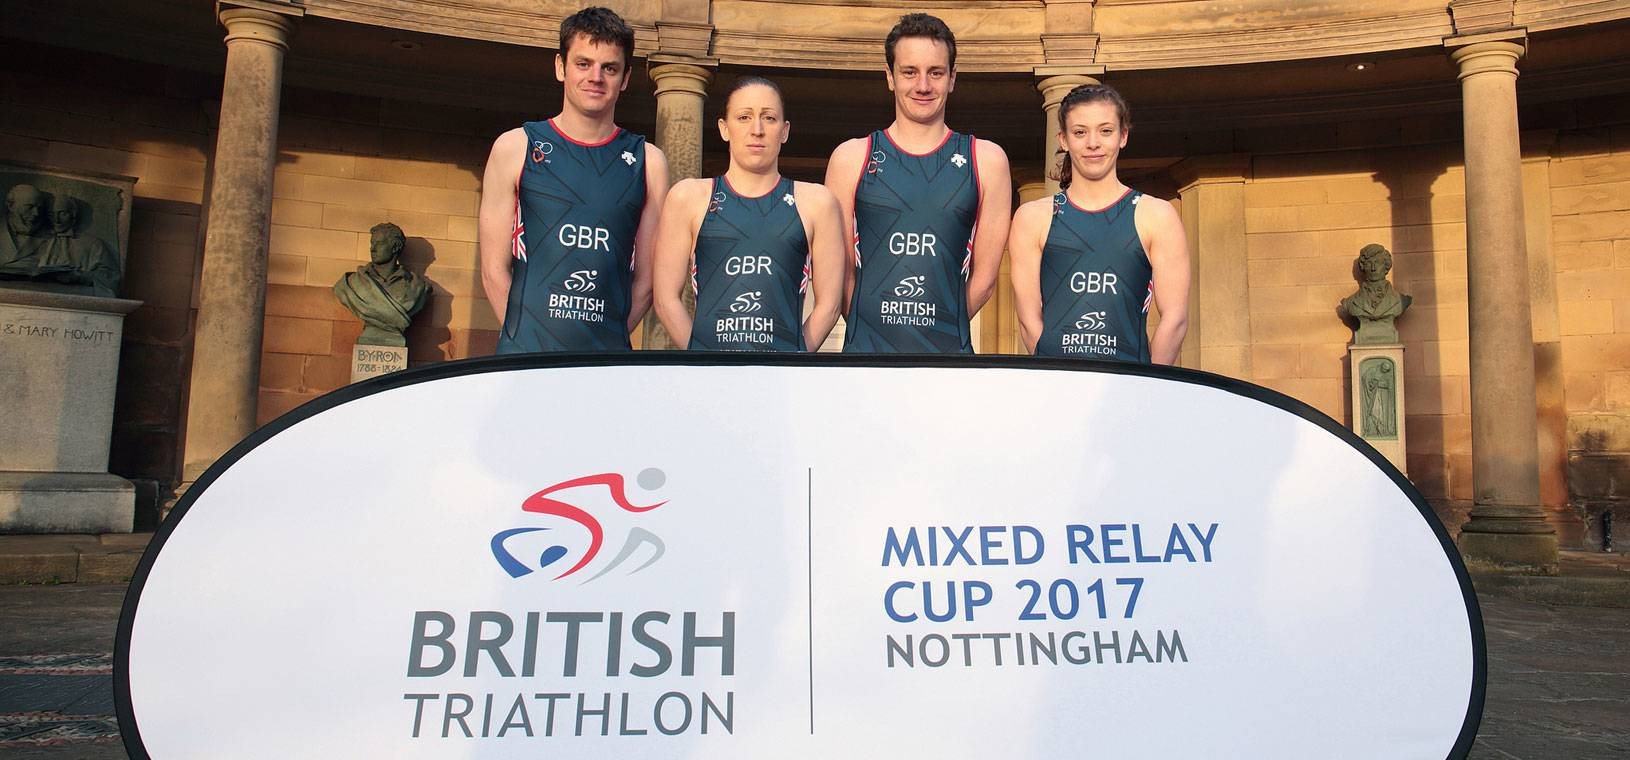 Nottingham hosted the Mixed Relay Cup in September ©British Triathlon